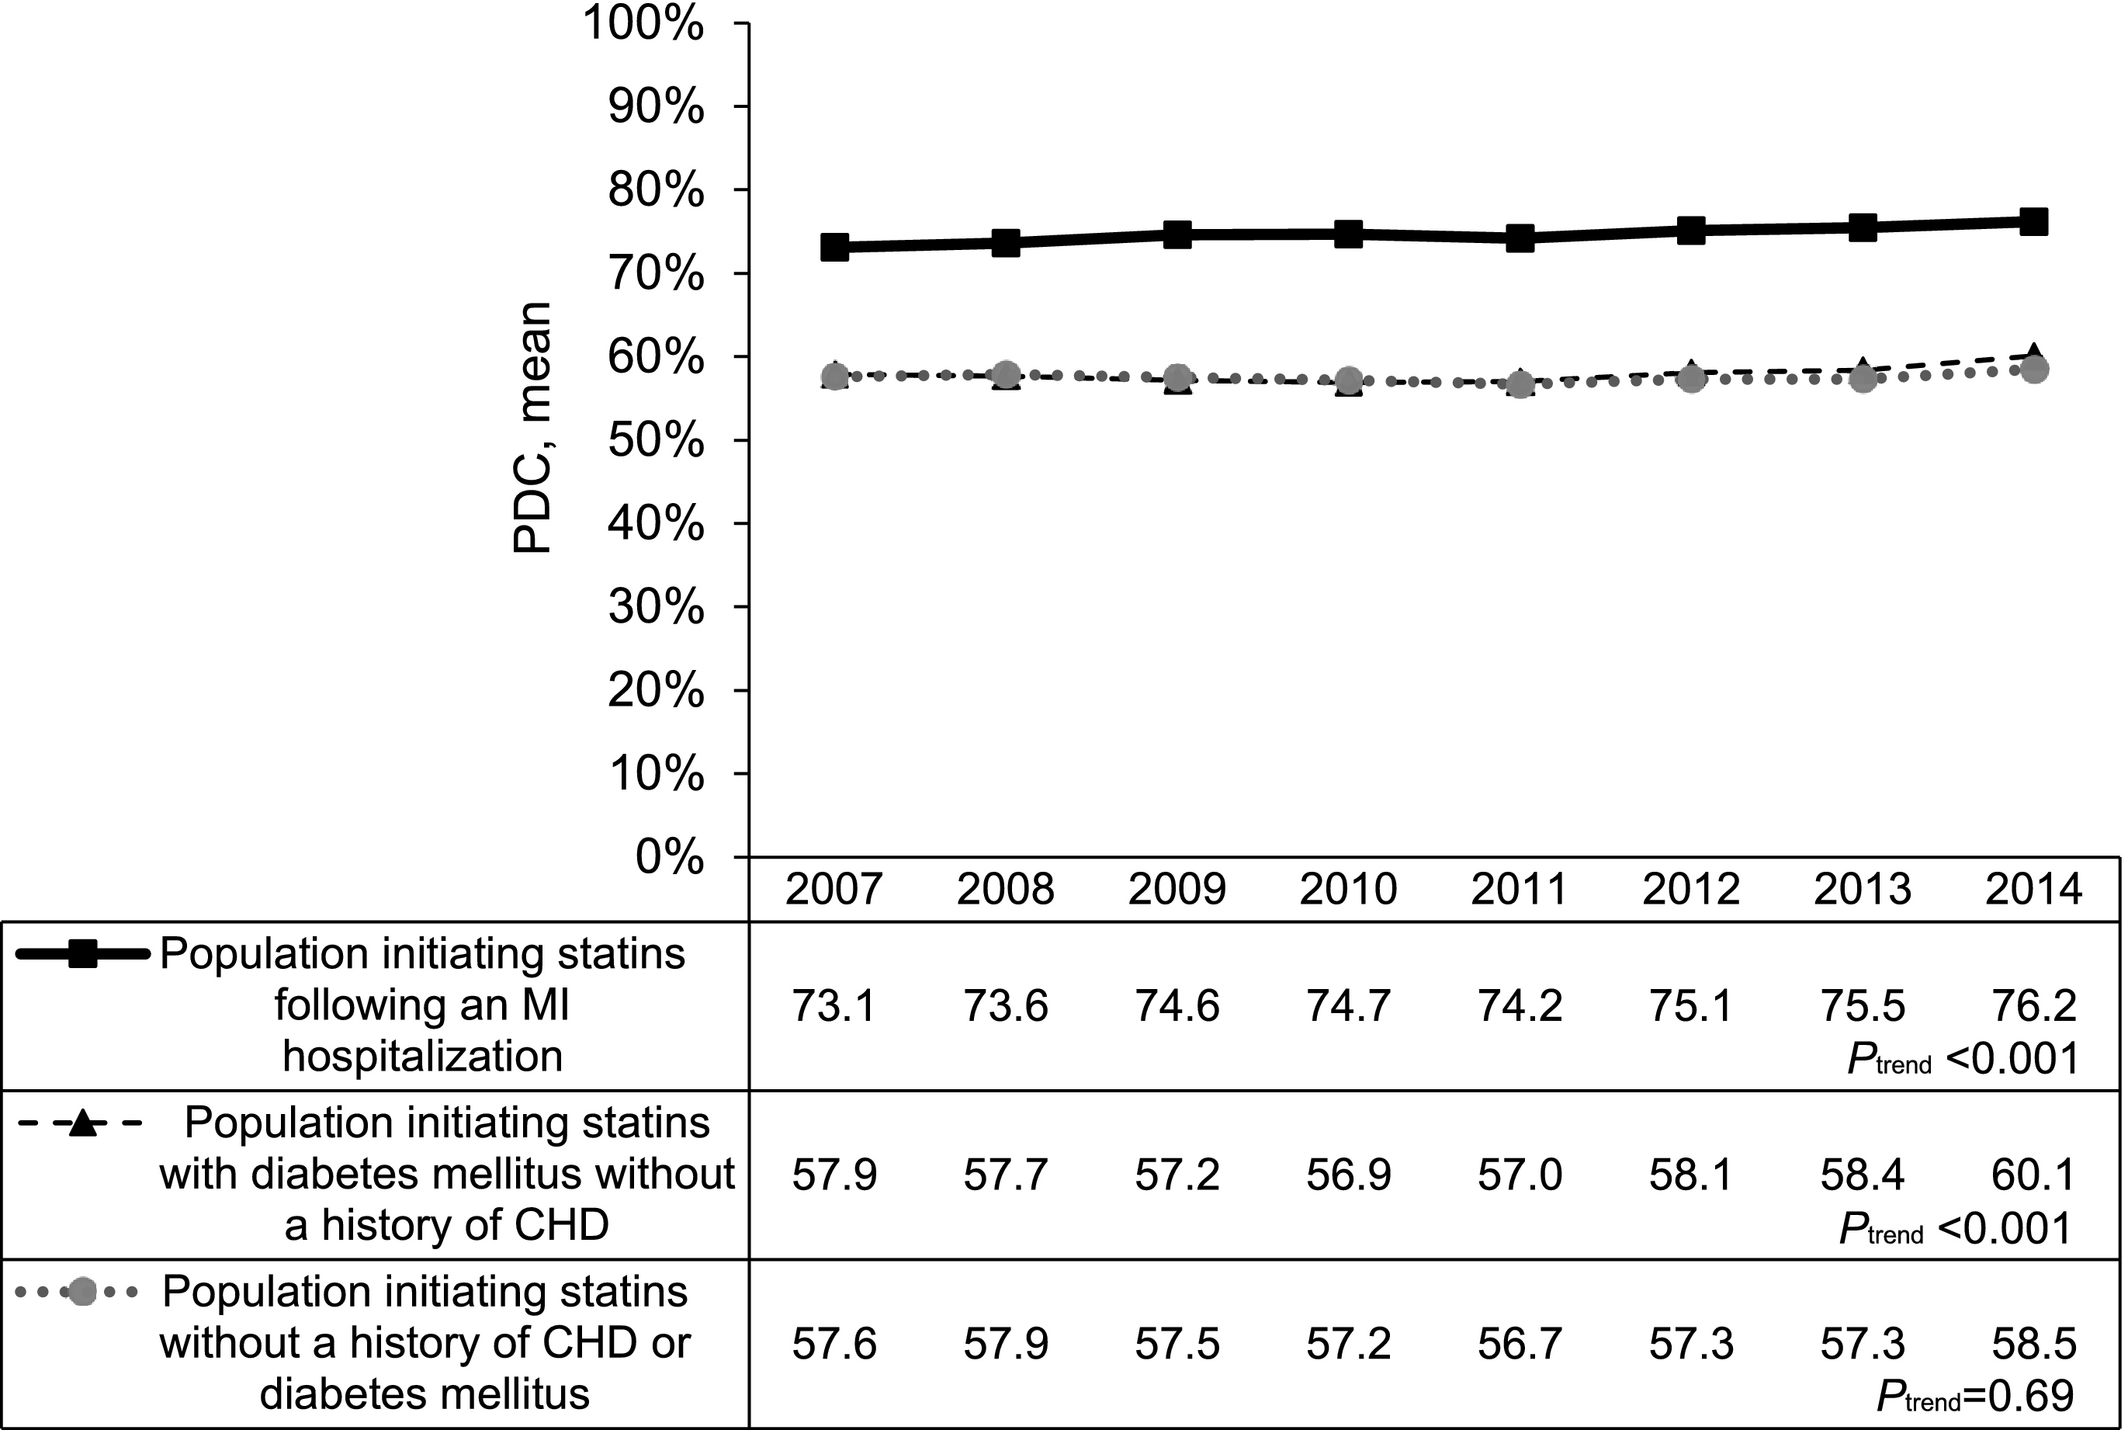 Adherence to Statin Therapy Among US Adults Between 2007 and 2014